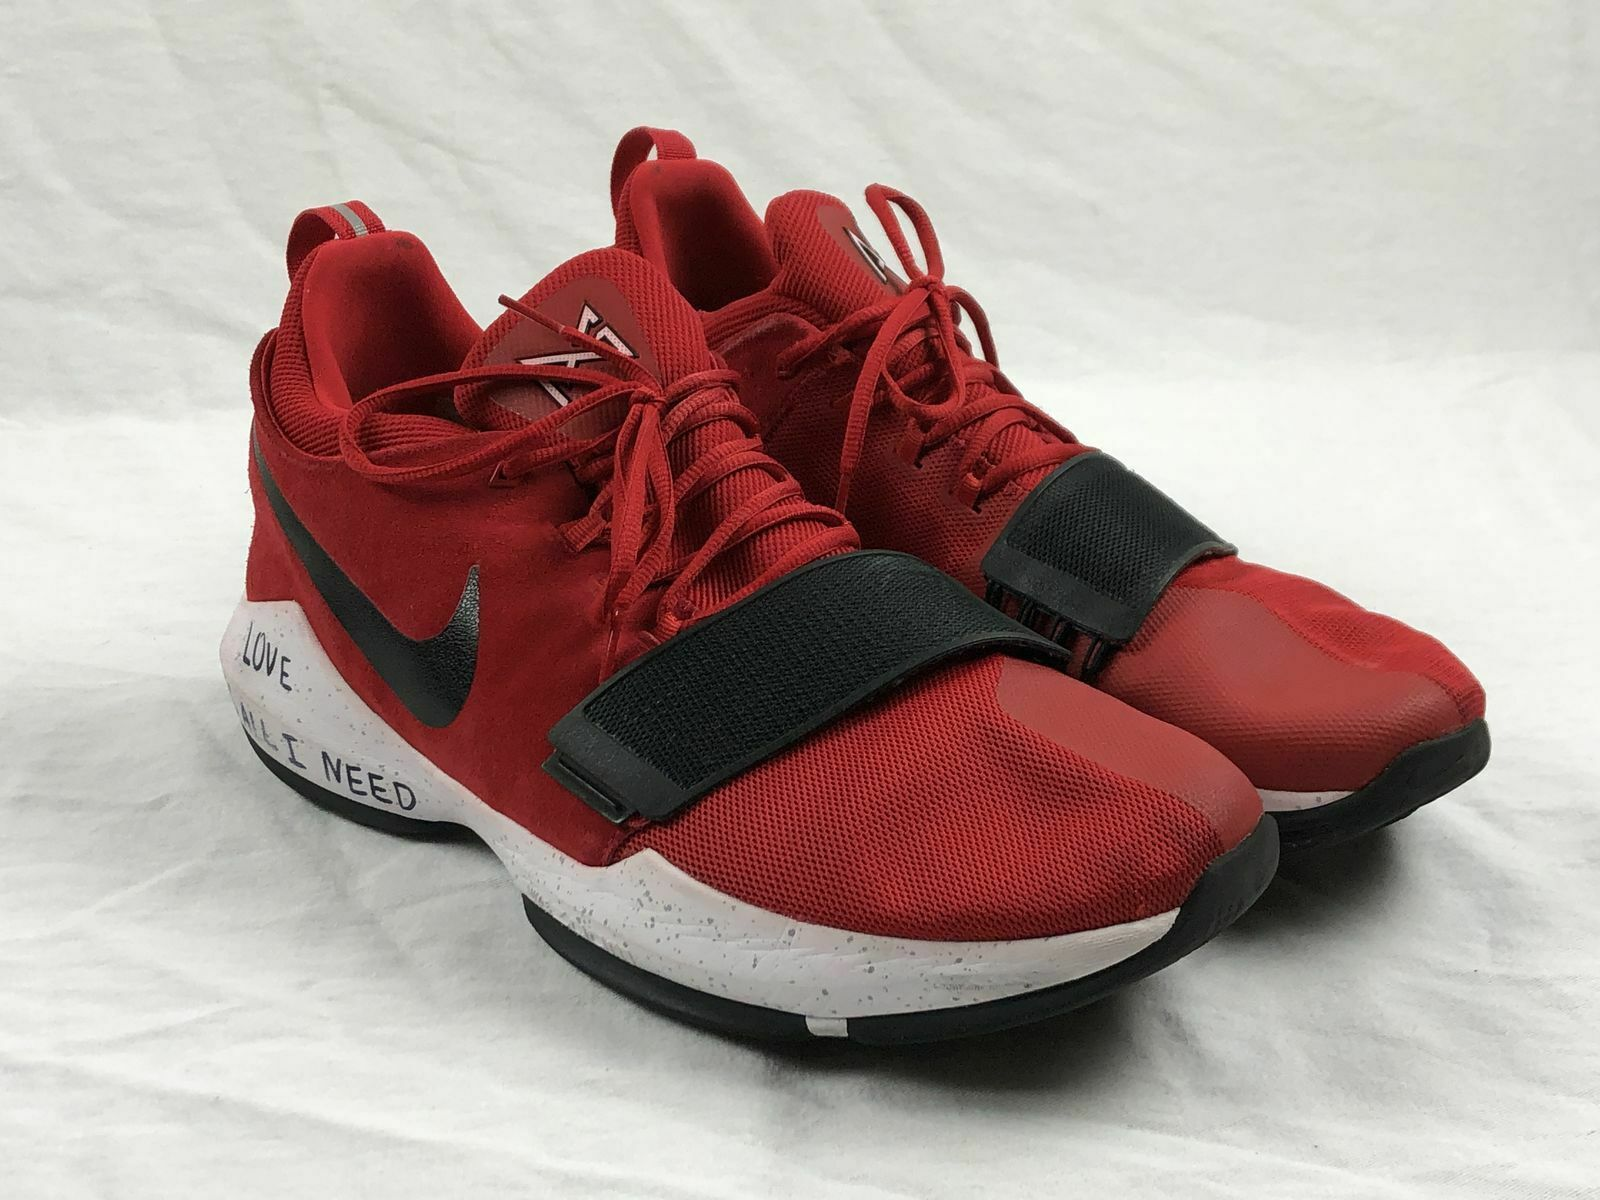 Nike PG 1 University Red - Red Basketball shoes (Men's 16) - Used